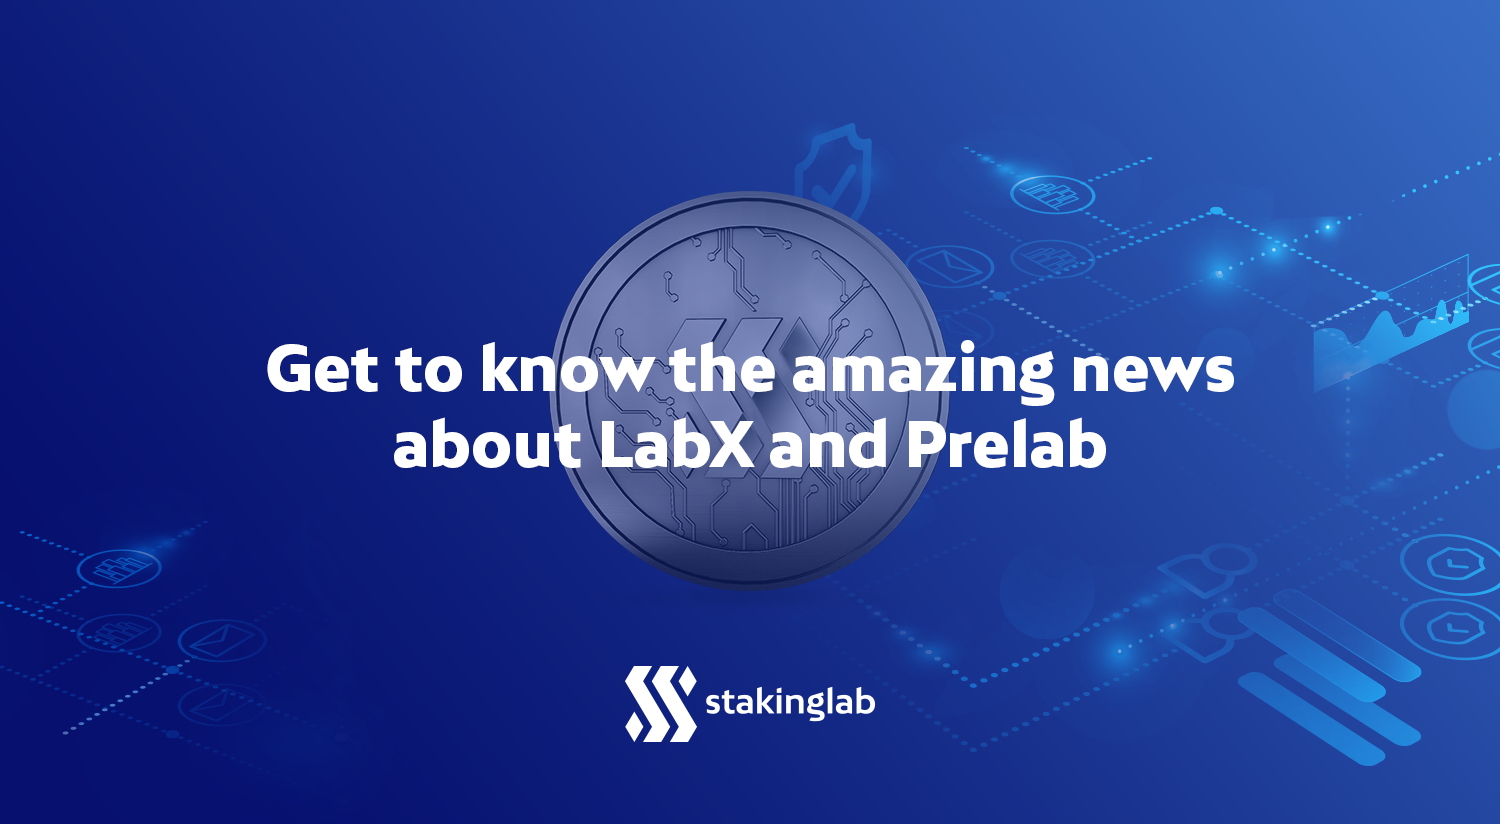 Get to know the amazing news about LabX and Prelab